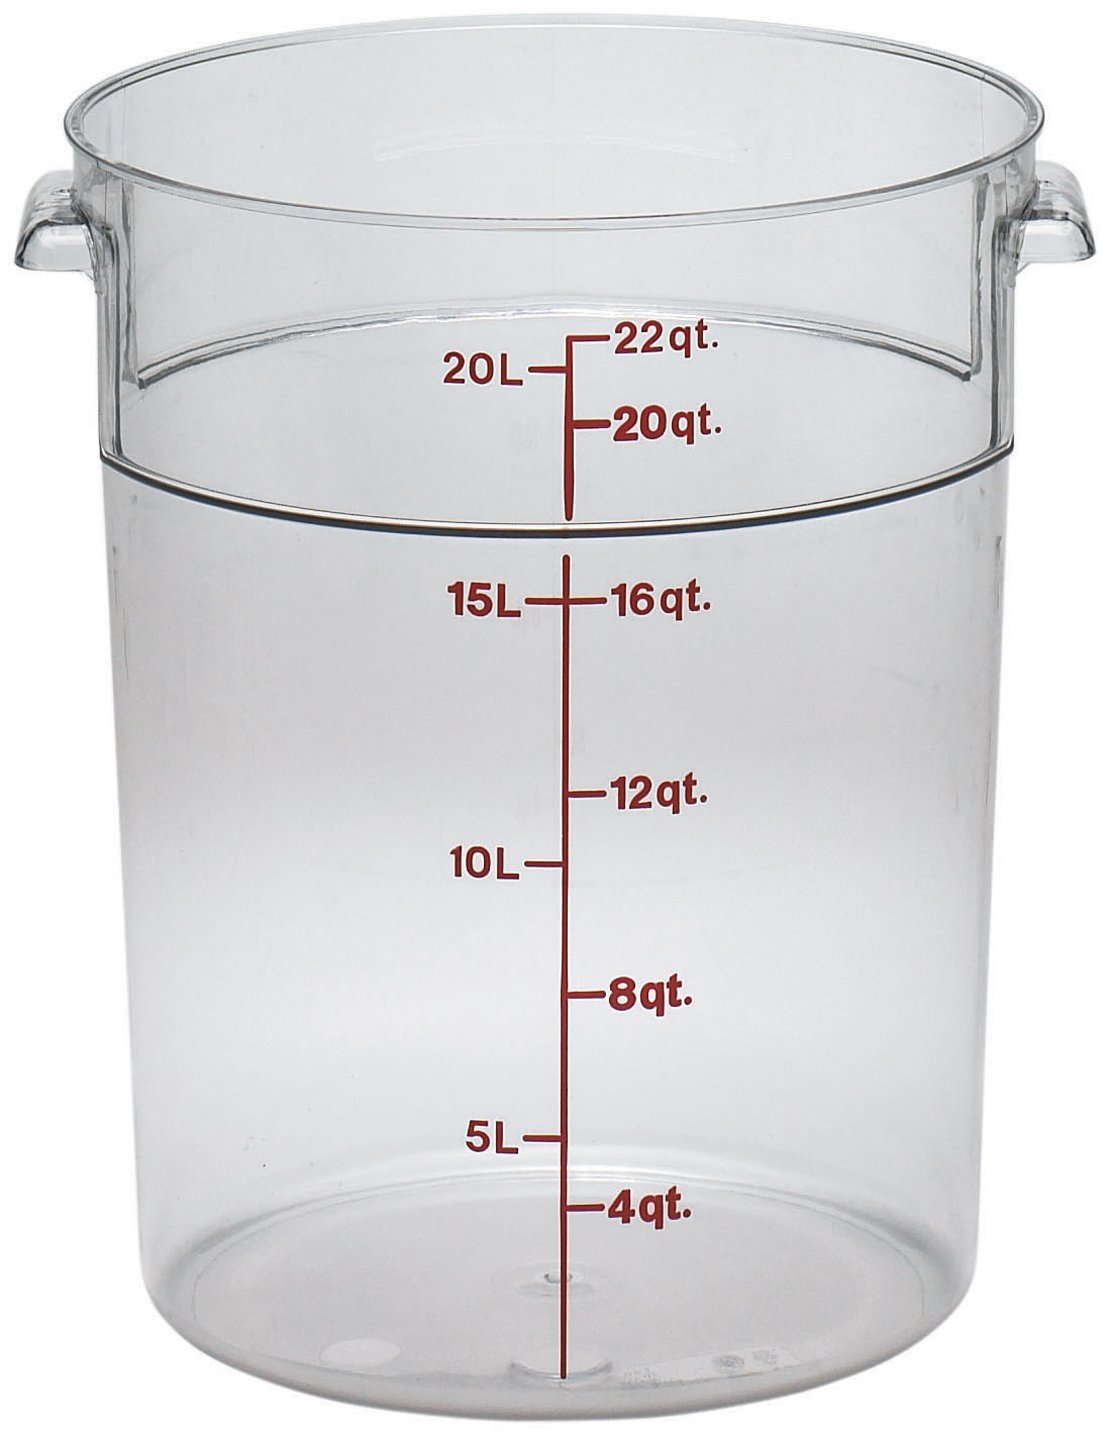 Amazoncom Cambro Round 6 Quart Storage Container Clear Food